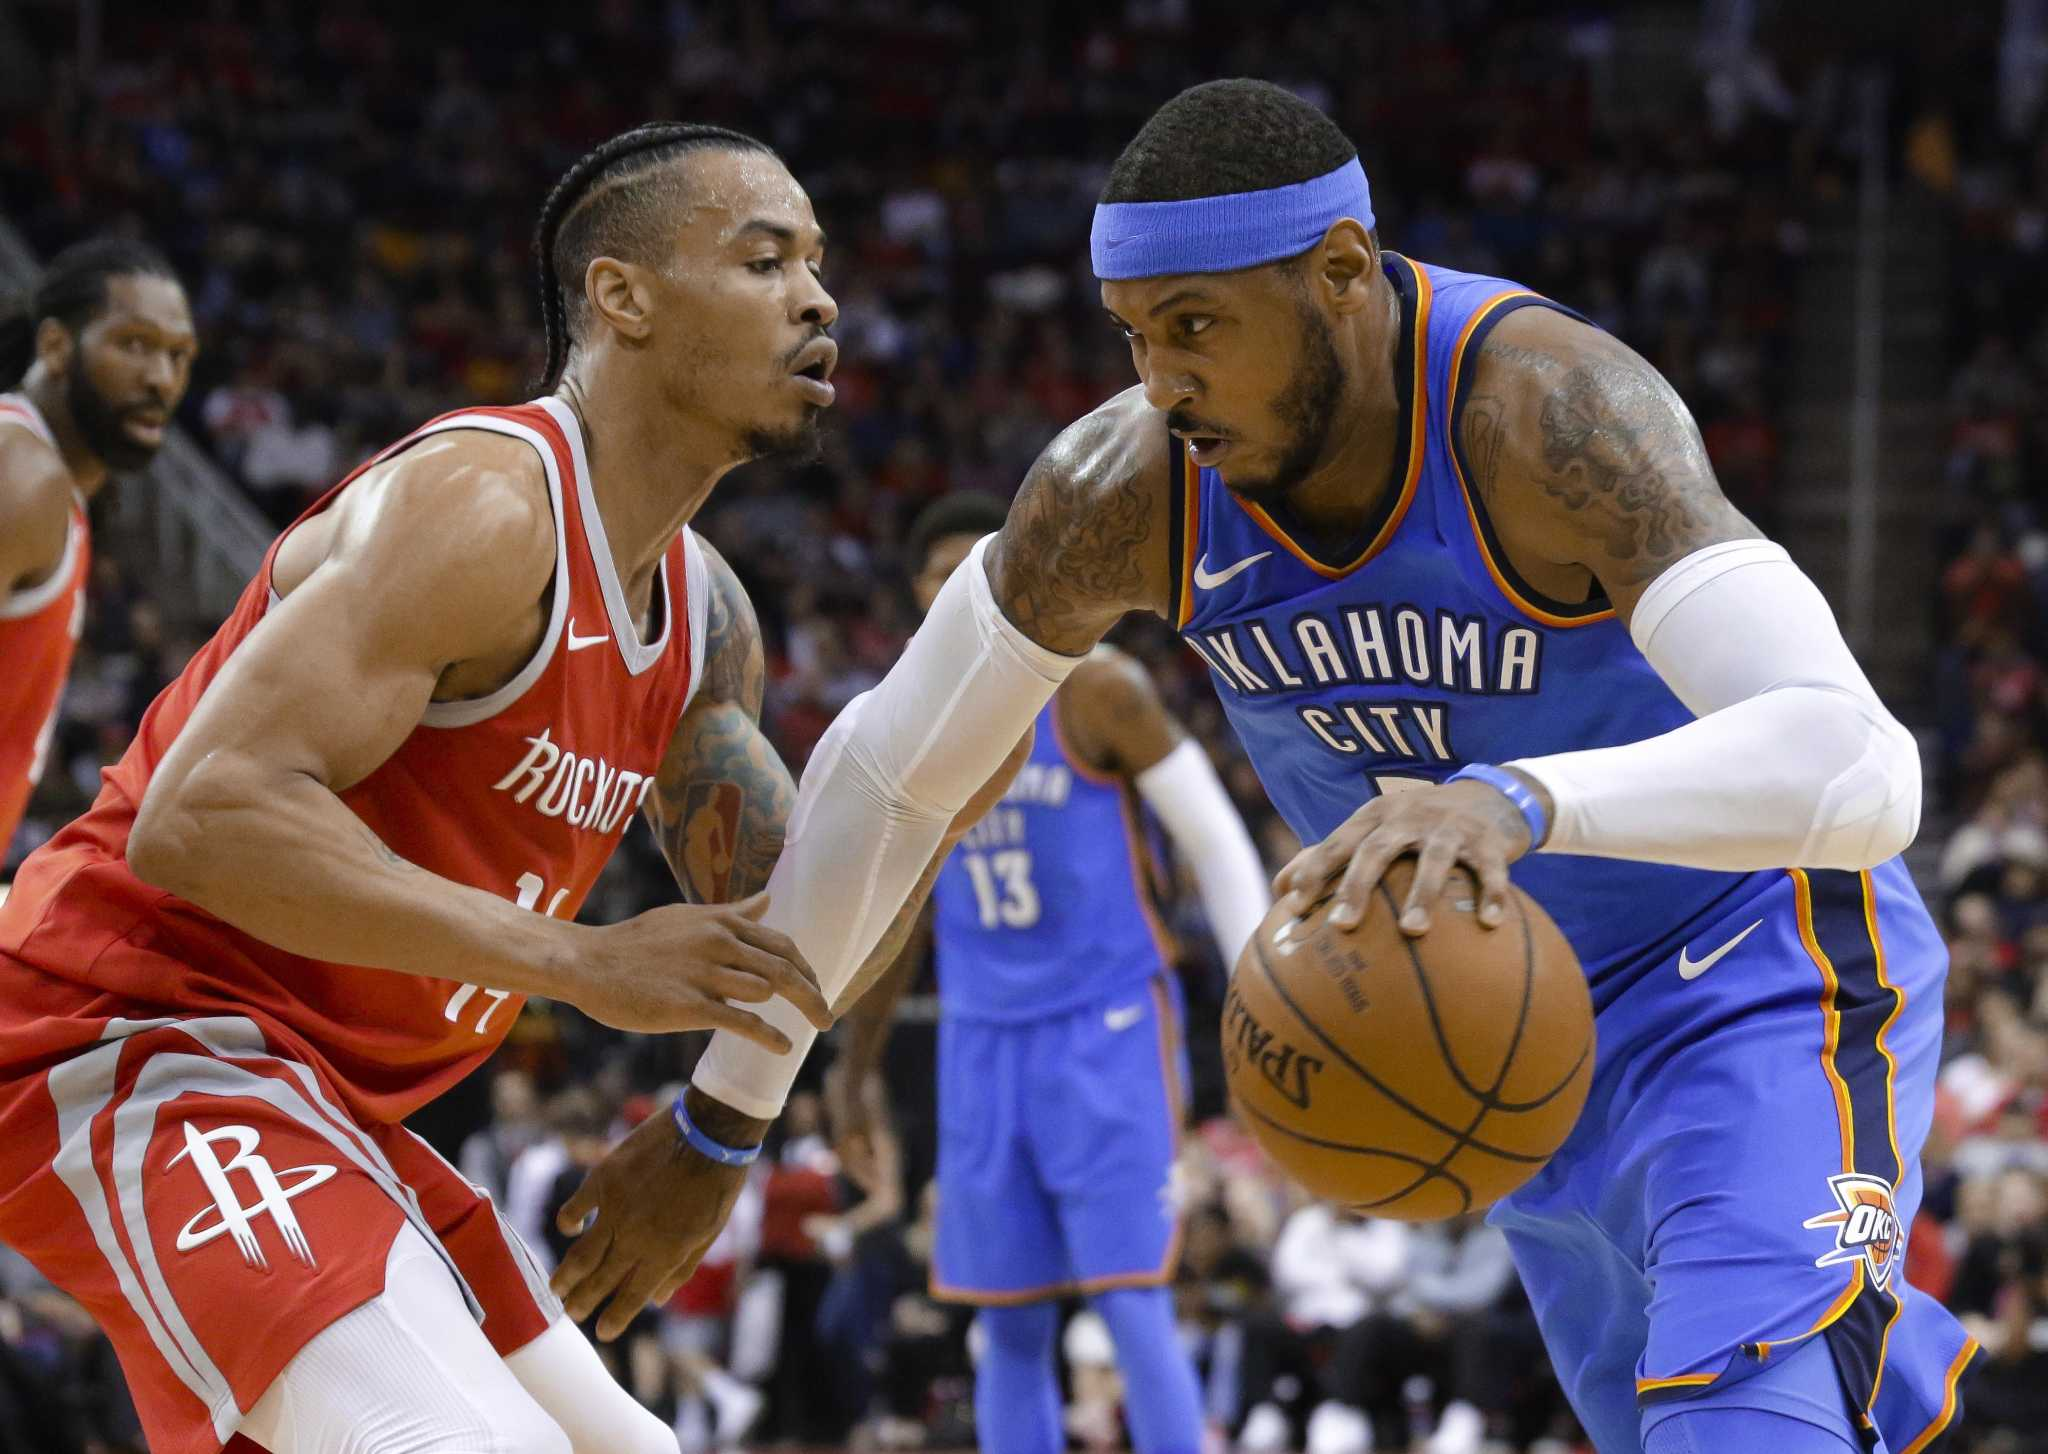 b337275f10a4 How Carmelo Anthony would fit with the Rockets - HoustonChronicle.com